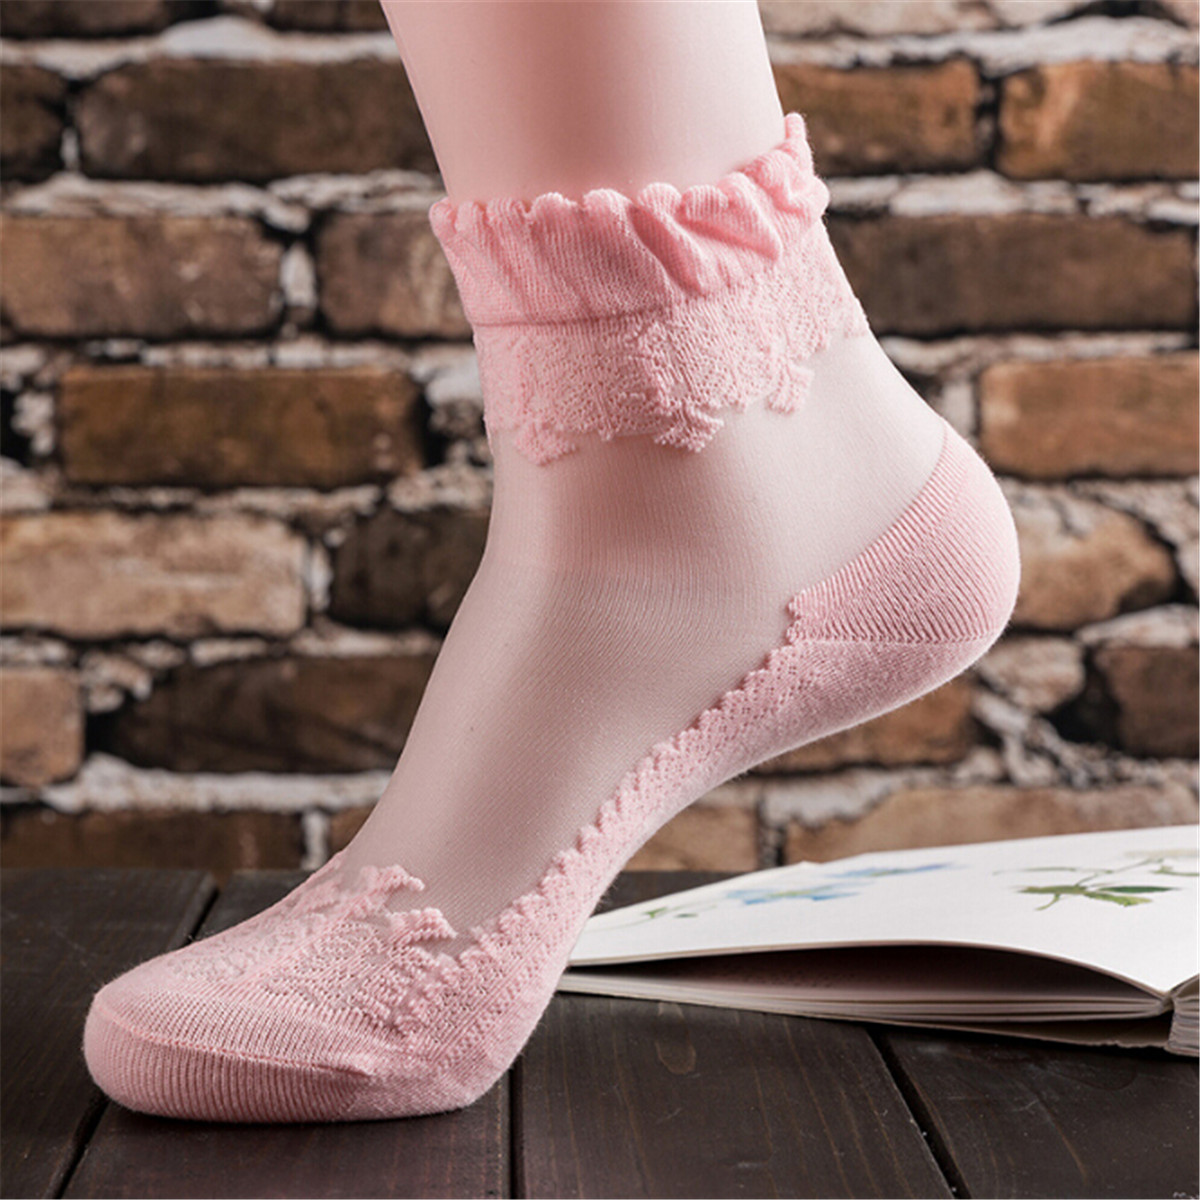 Women Floral Lace Ruffle Lacework Frilly Embroidered Short Ankle Socks NEW